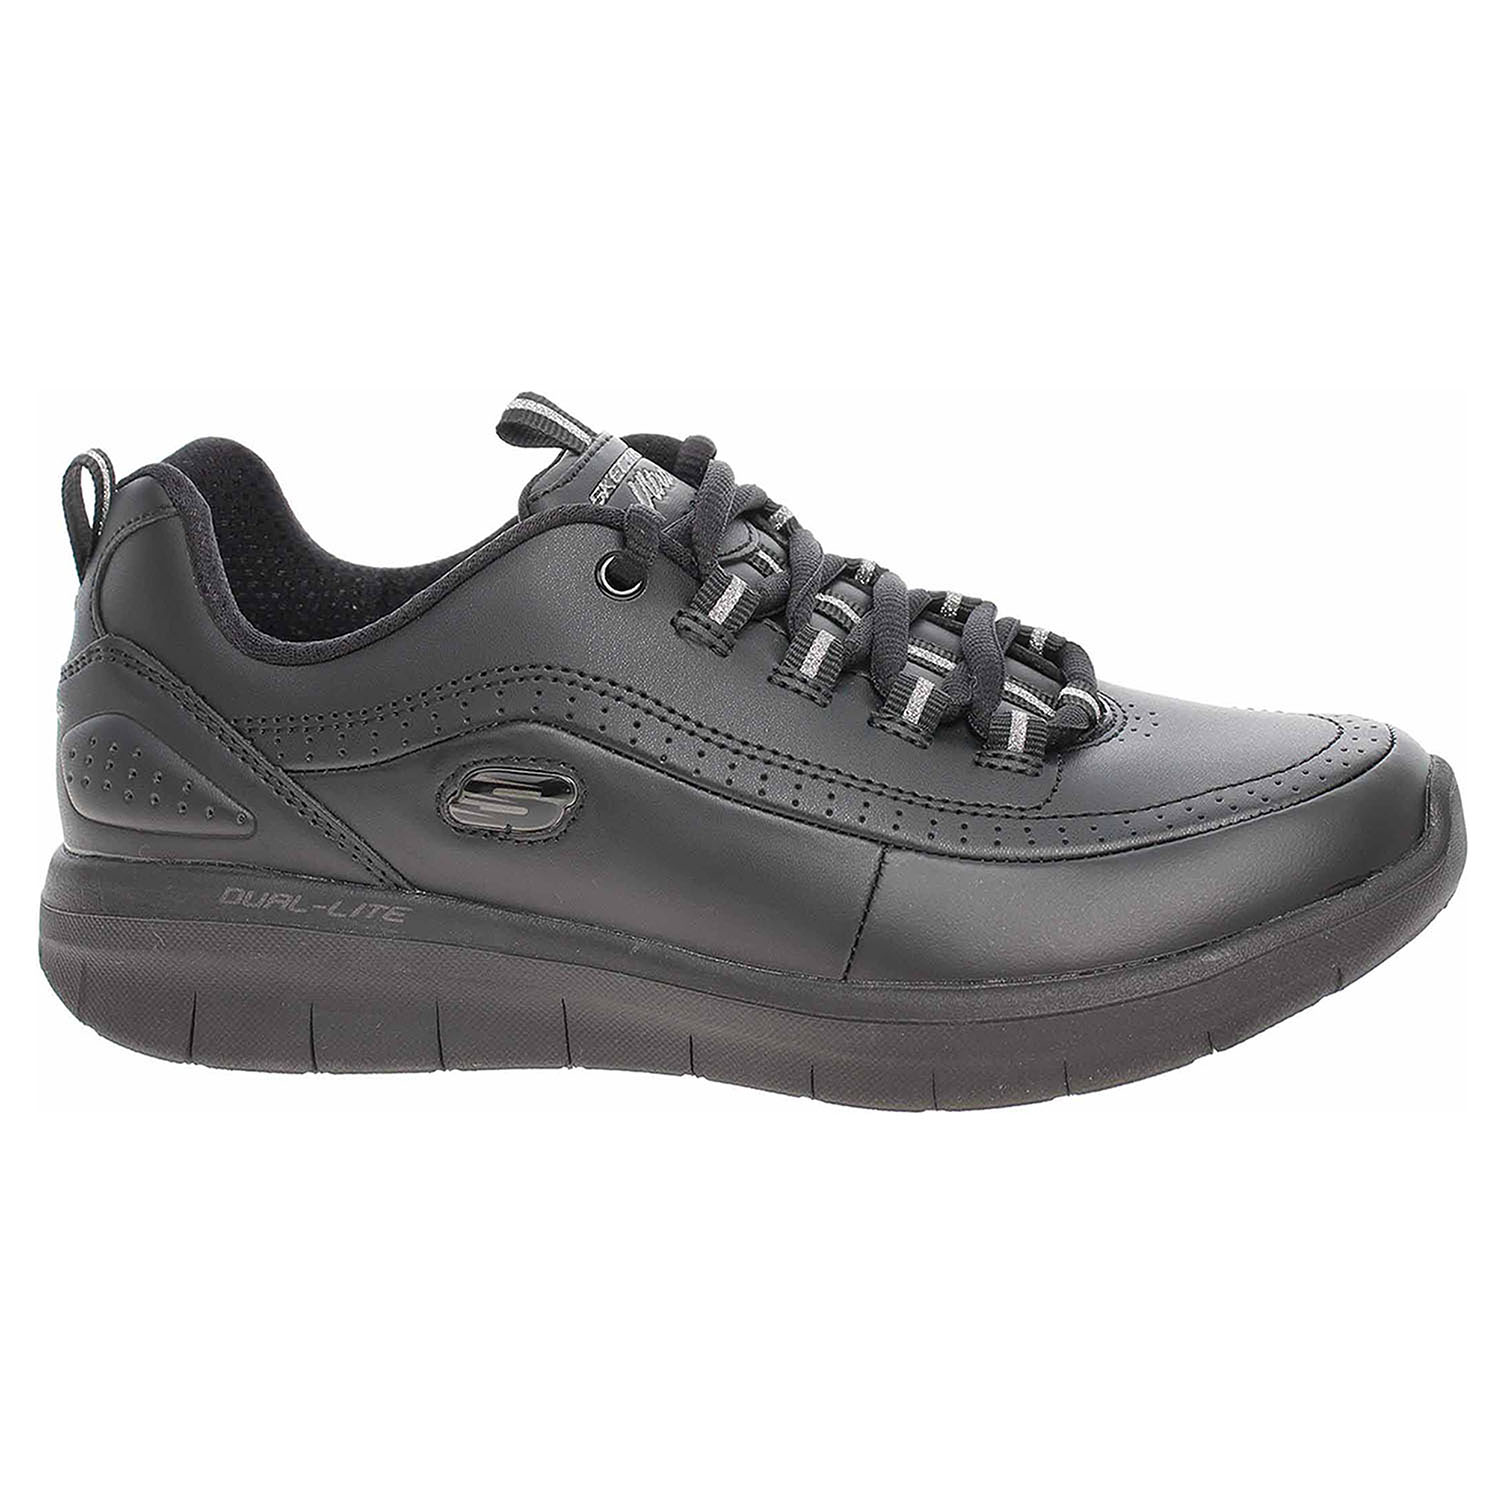 Skechers Synergy 2.0 black 12363 BBK 39